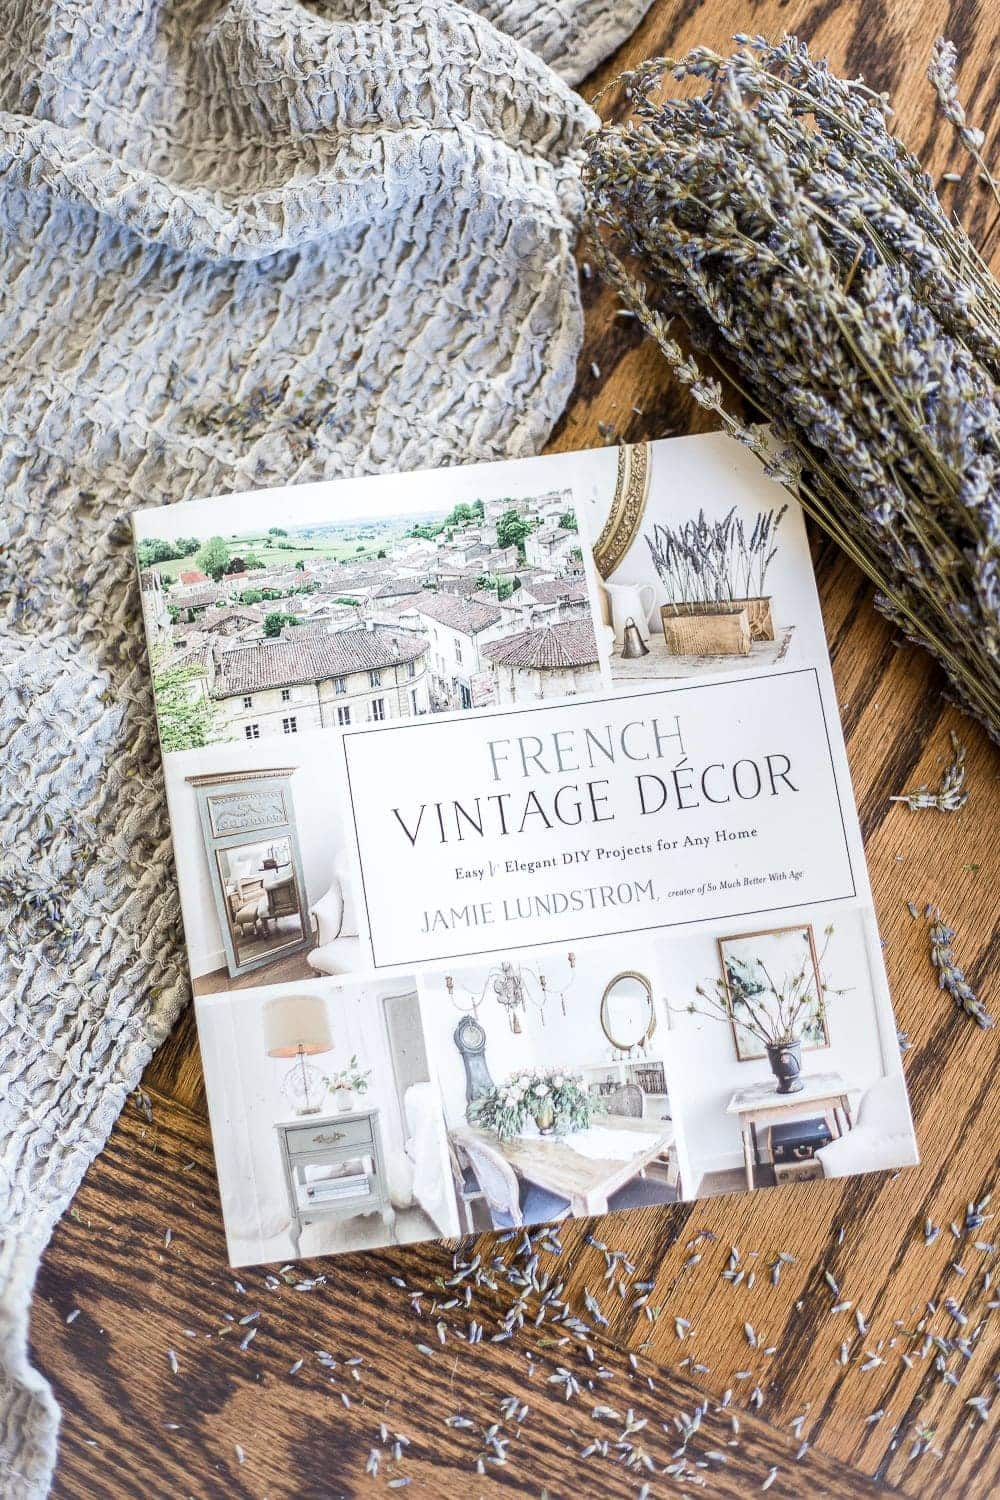 French Vintage Decor by Jamie Lundstrom from So Much Better With Age